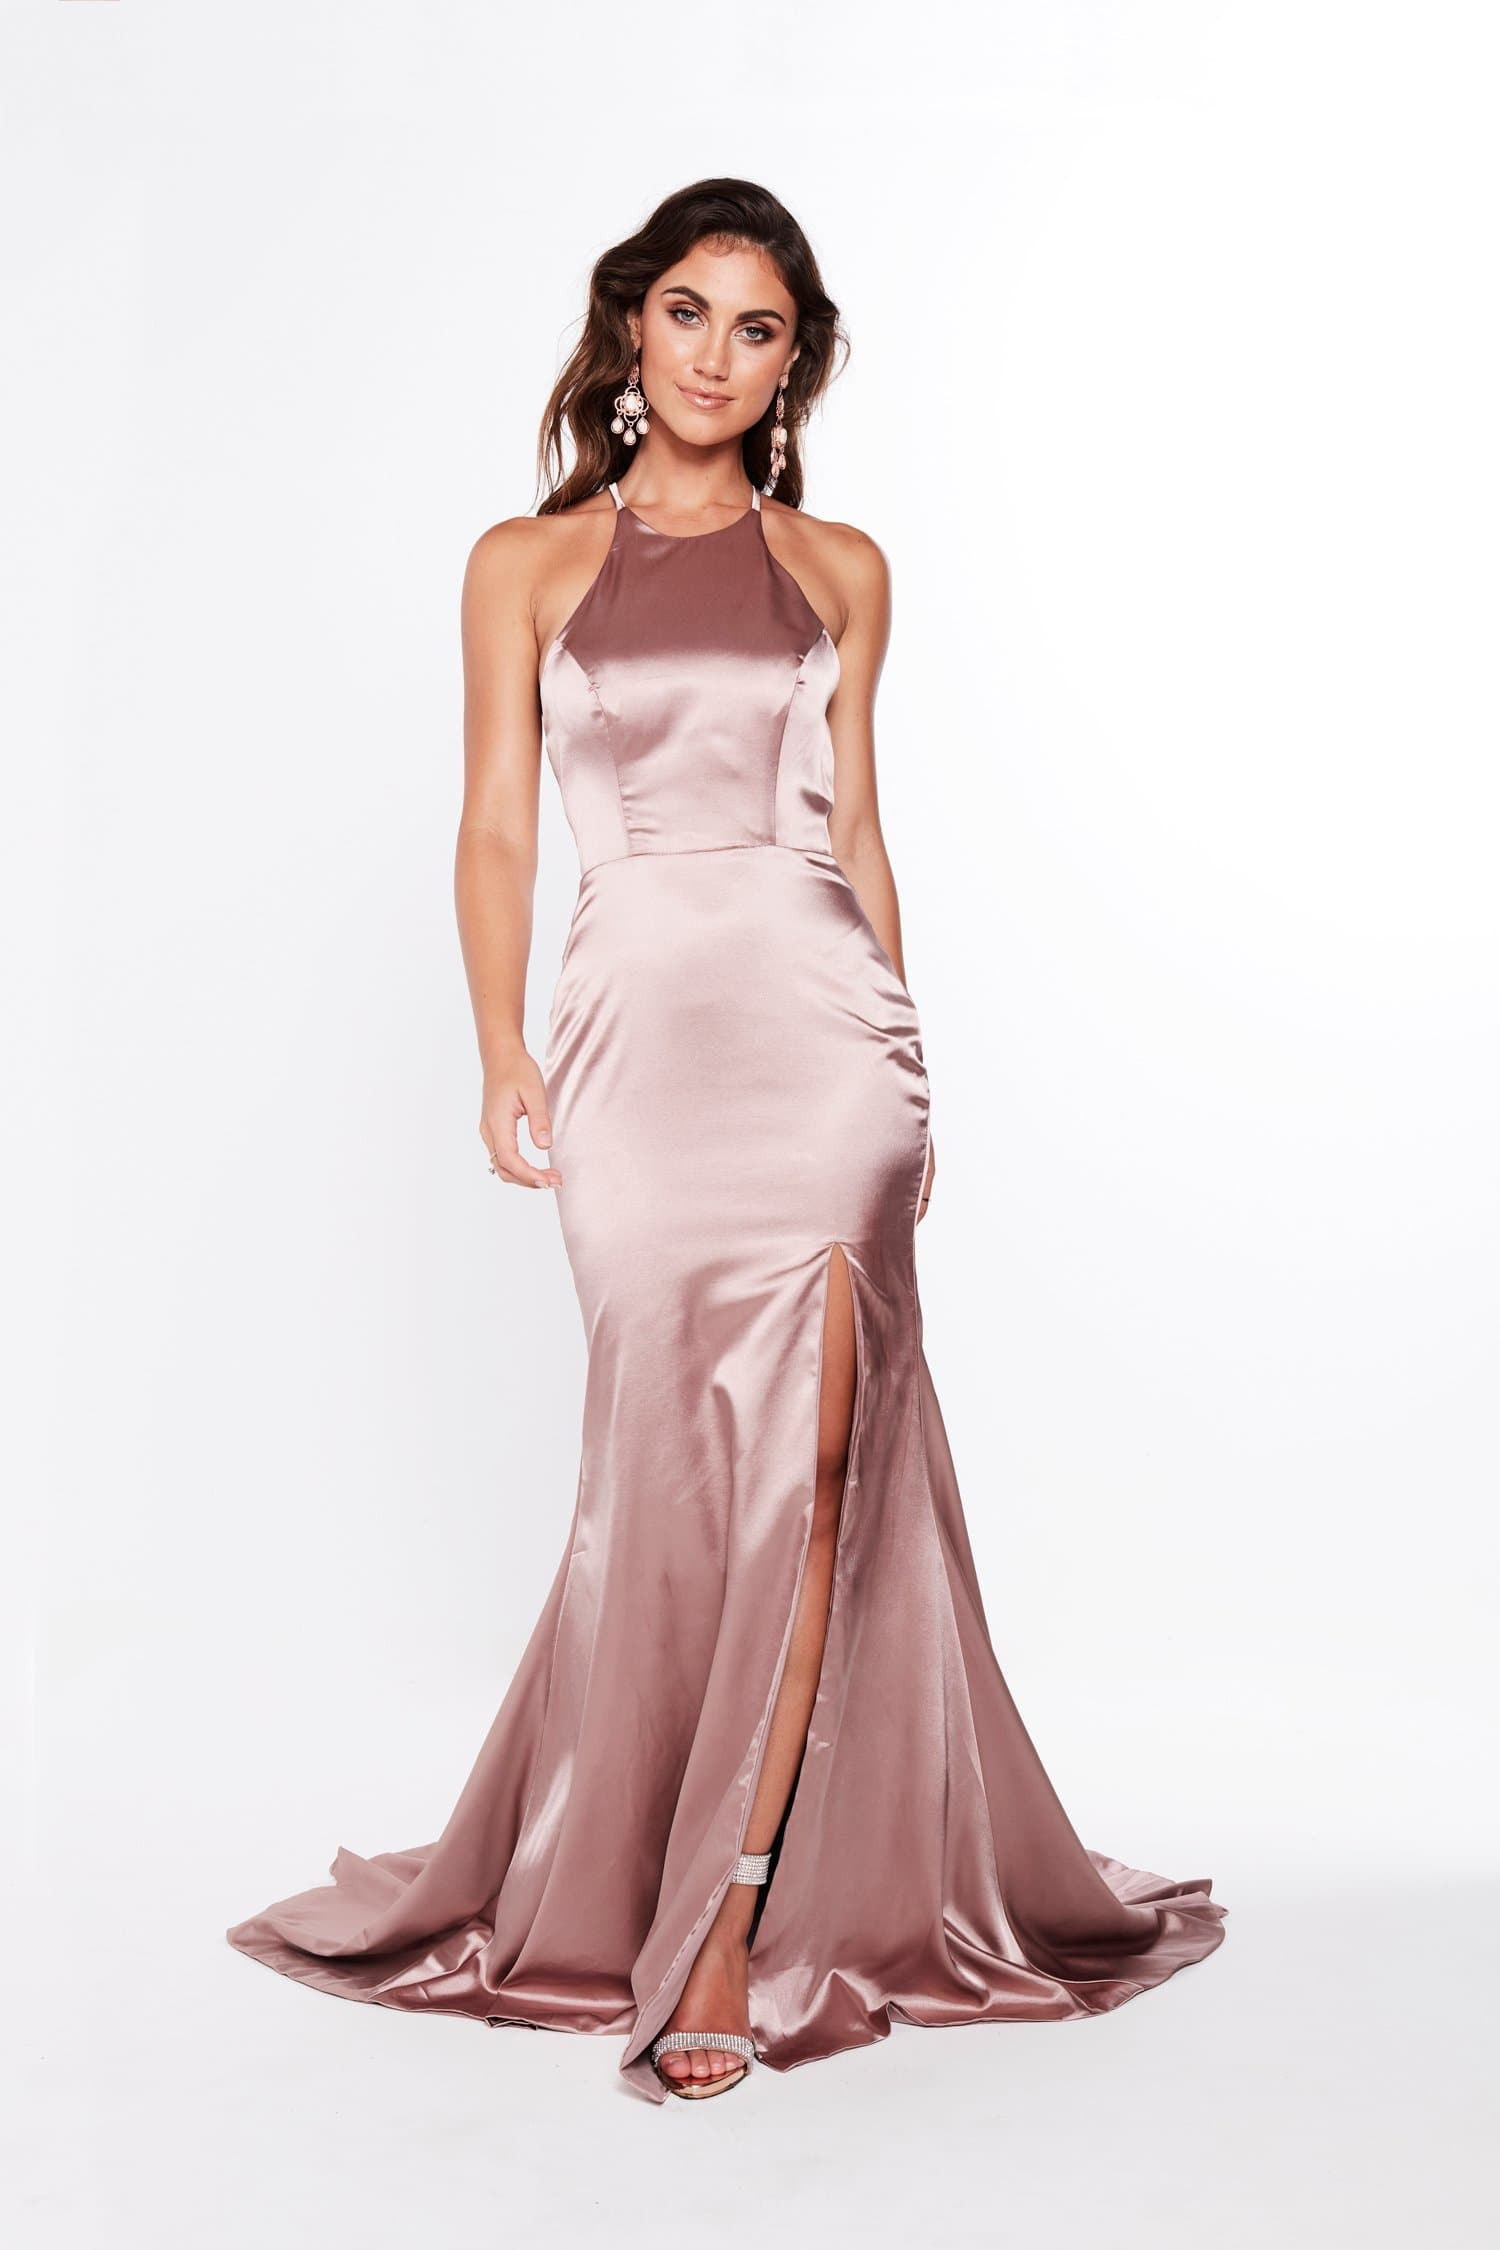 A&N Kiara - Mauve Satin Gown with High Neckline and Side Slit